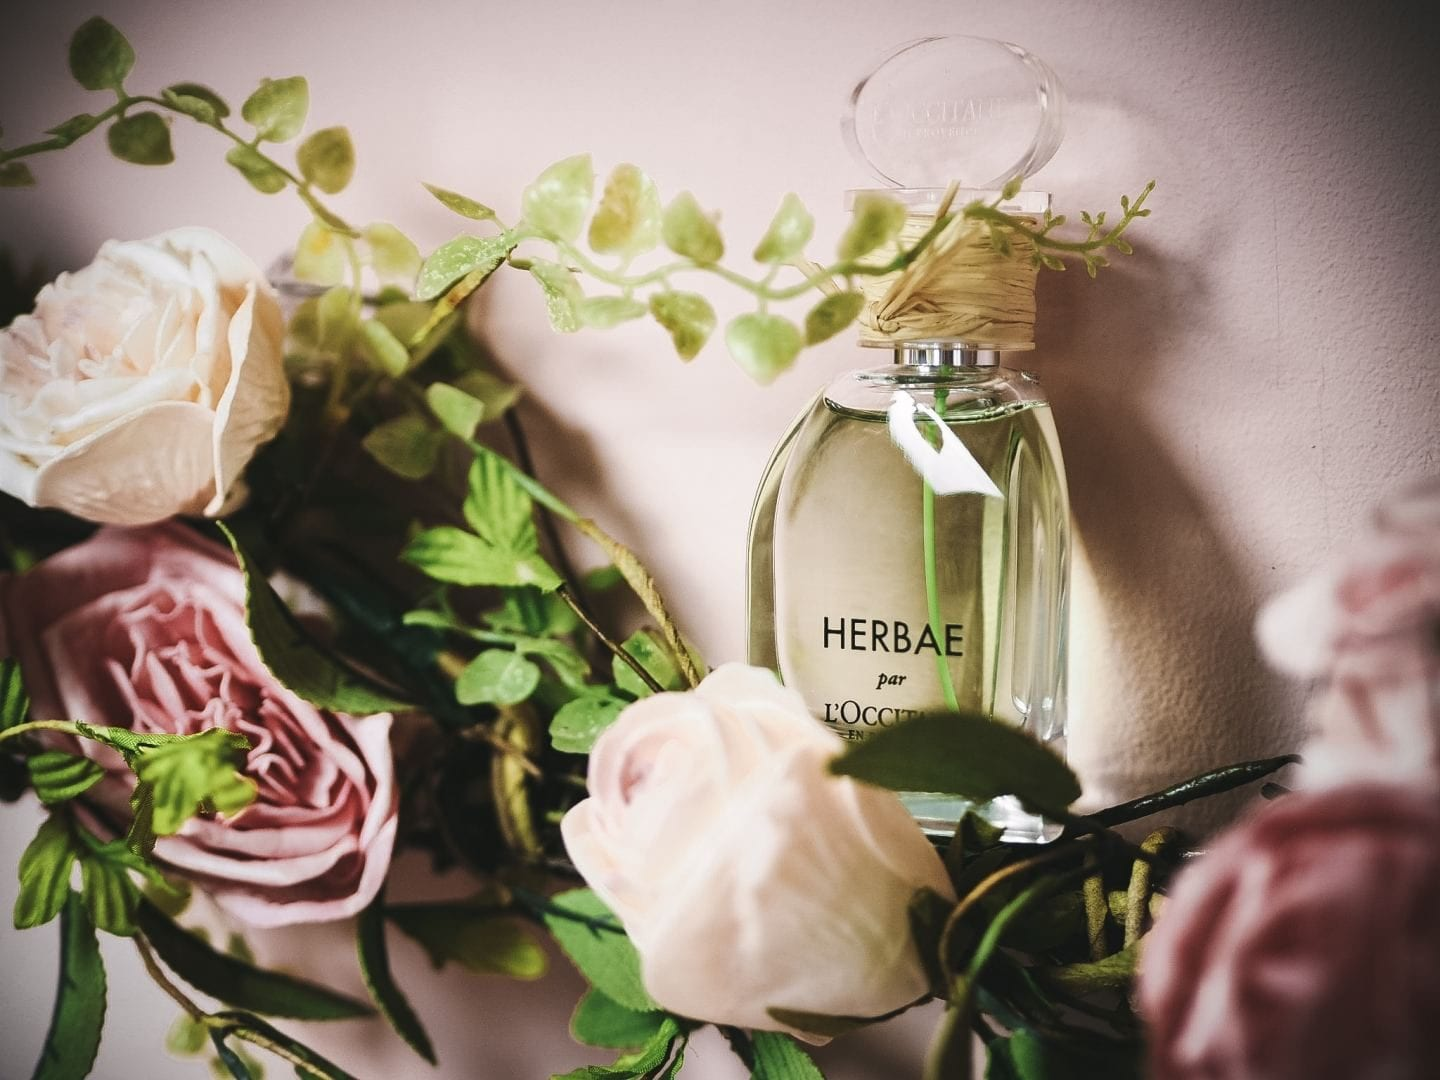 L'Occitane 'Herbae par L'Occitane' the best l'occitane perfume fragrance review 2019 green perfume new launch the best of french fragrances 45mm olympus pen lens